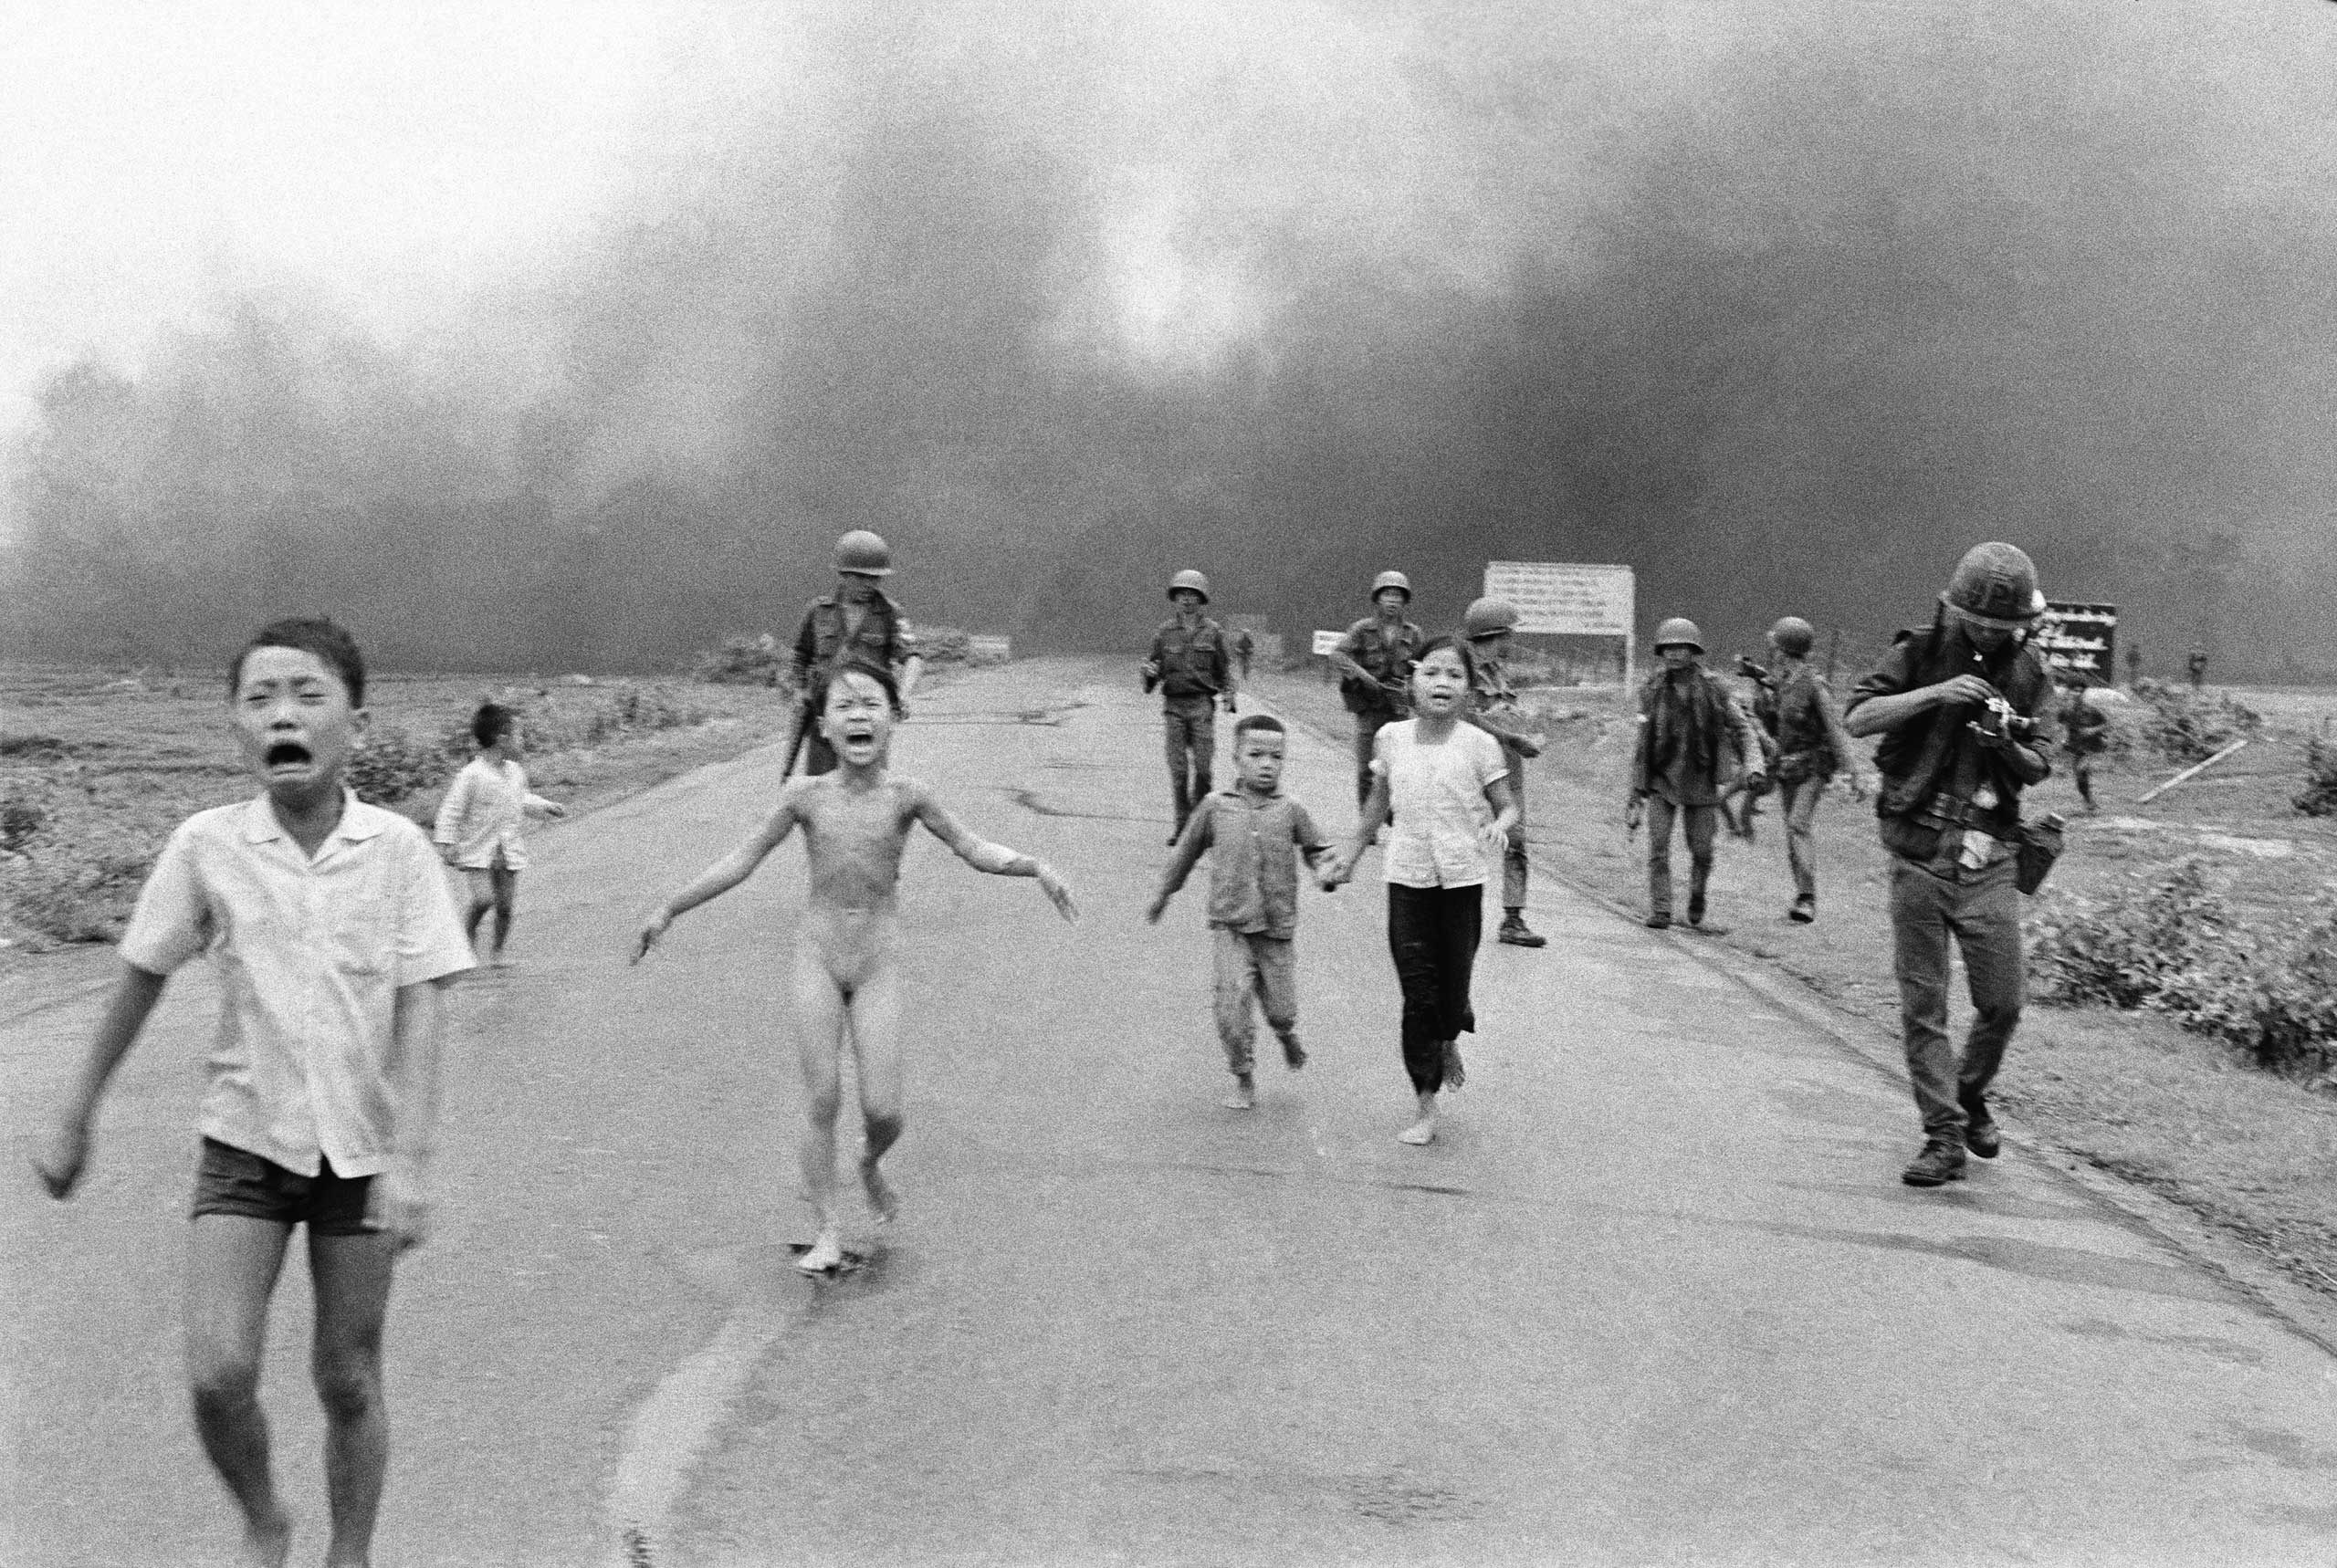 South Vietnamese forces follow after terrified children, including 9-year-old Kim Phuc (center) as they run down Route 1 near Trang Bang after an aerial napalm attack on suspected Viet Cong hiding places on June 8, 1972.